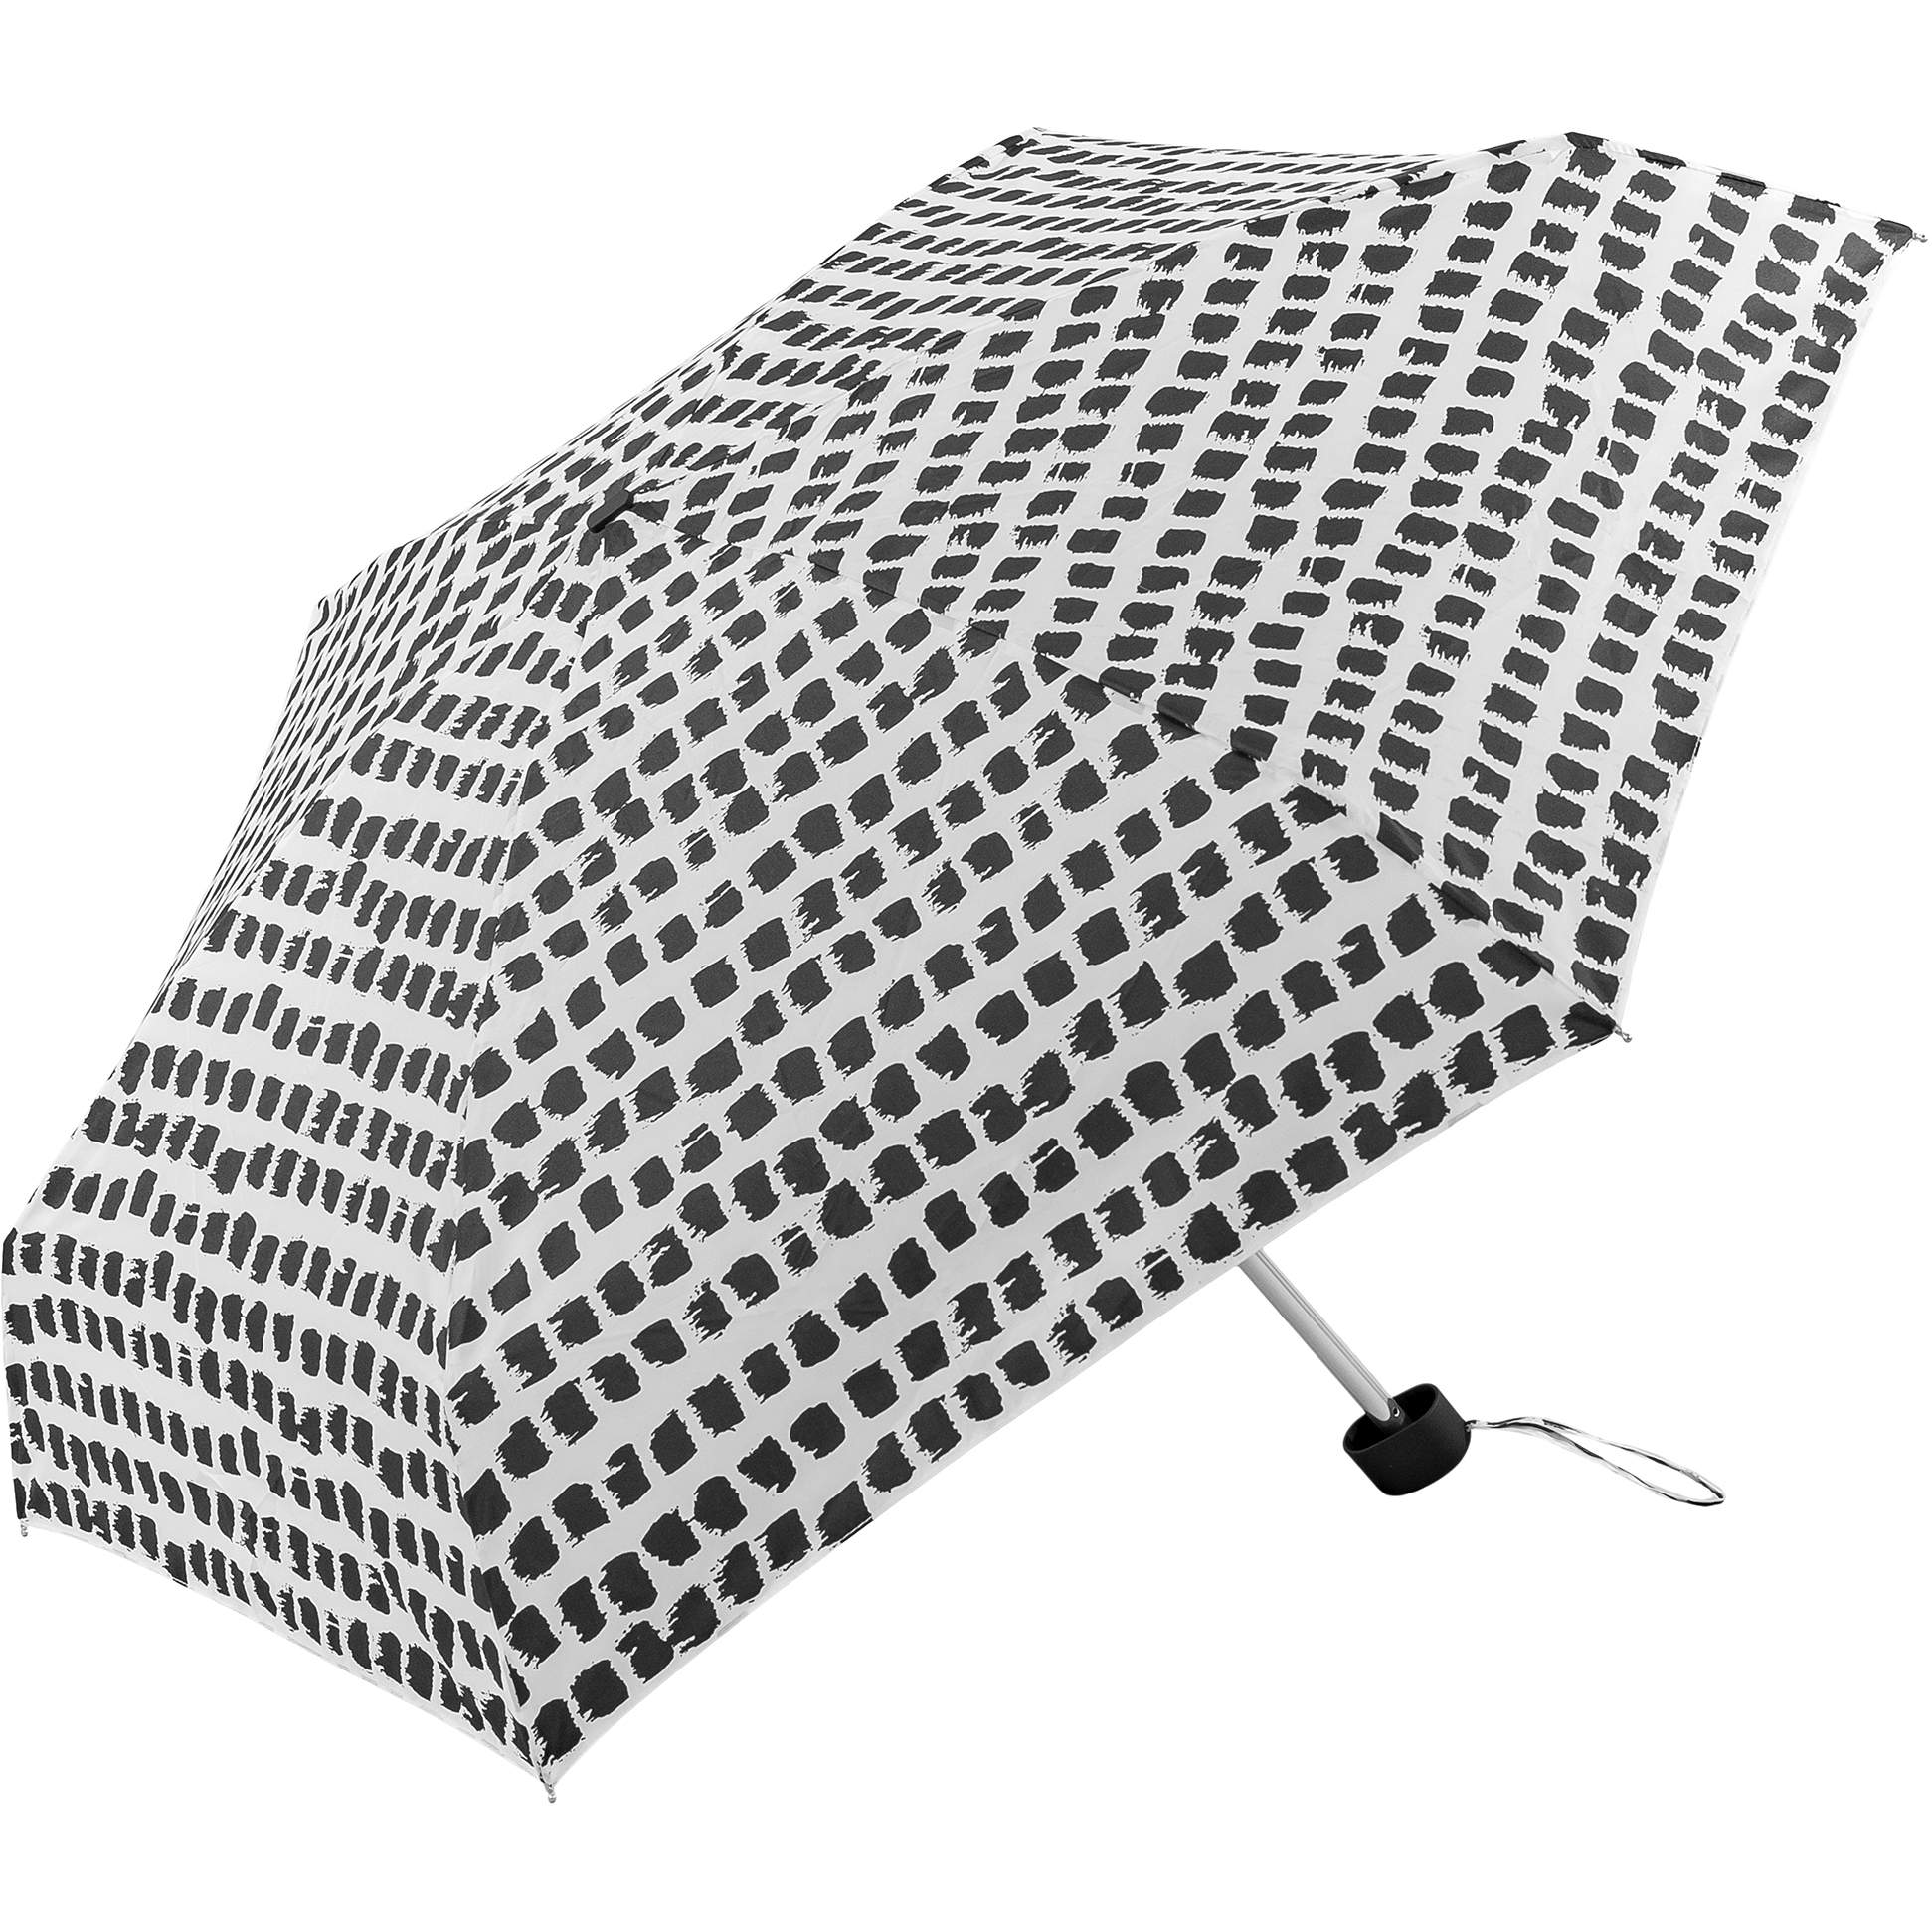 Super mini umbrella with black and white spots (51034-2)